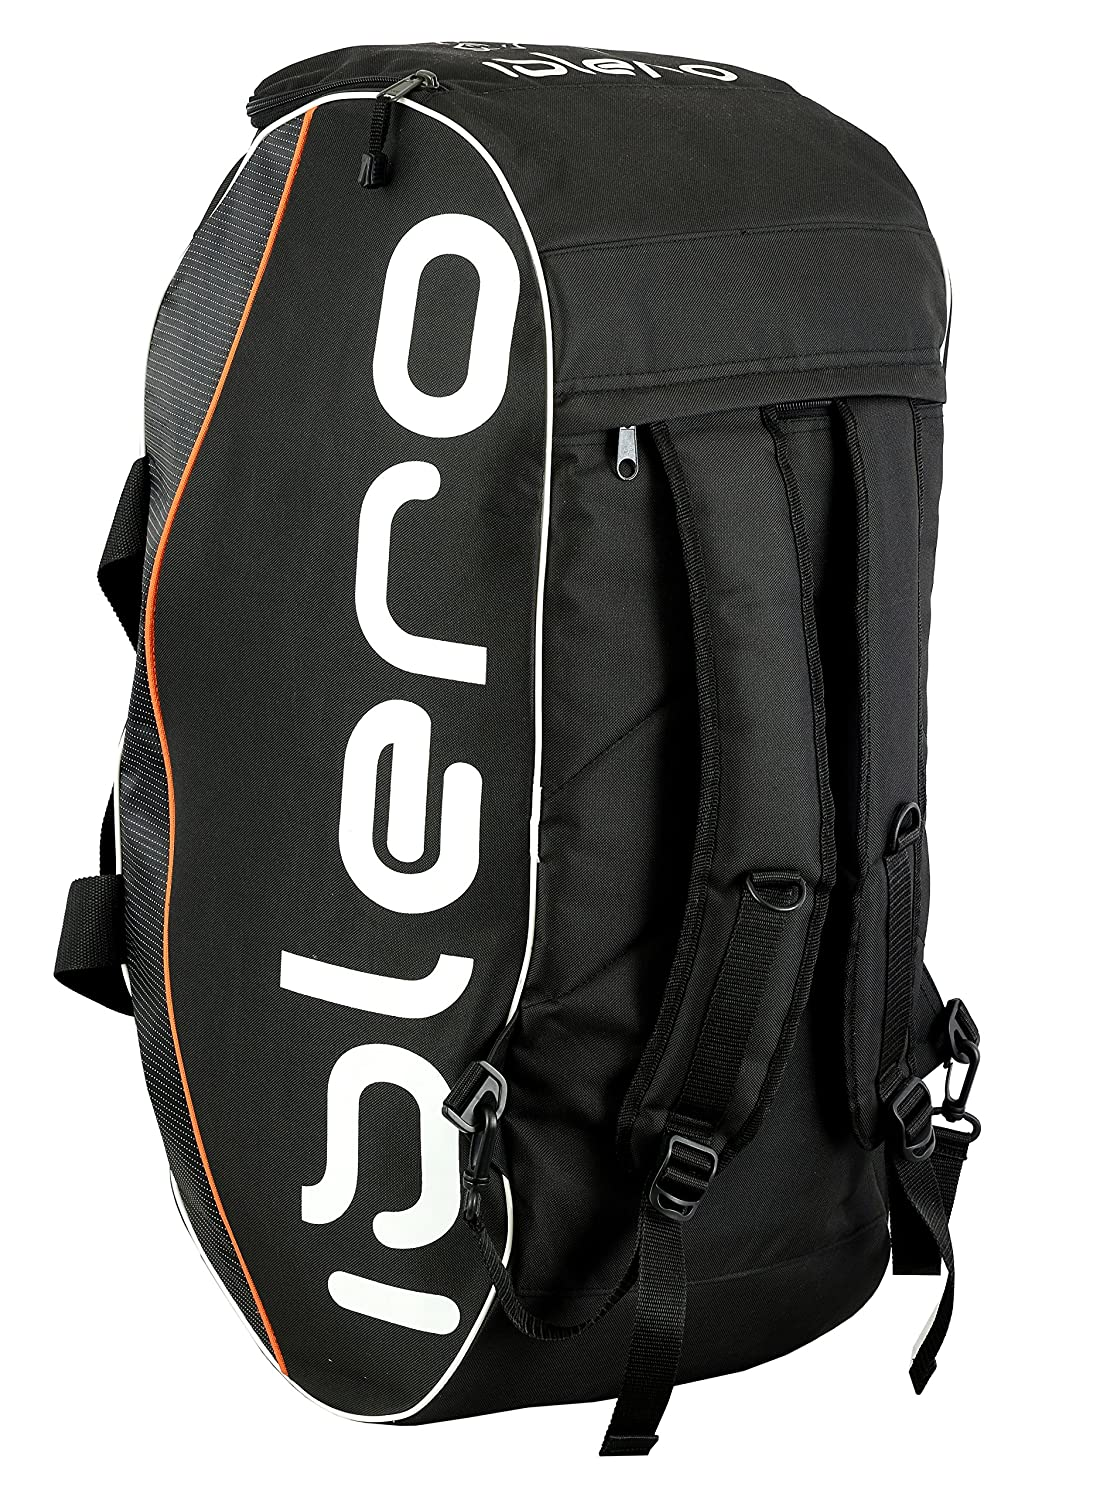 Islero GYM Sports kit bag backpack Duffle football Fitness Training MMA  Boxing Luggage Travel Bag 36 Liters  Amazon.co.uk  Sports   Outdoors d7f6e04efe4f2